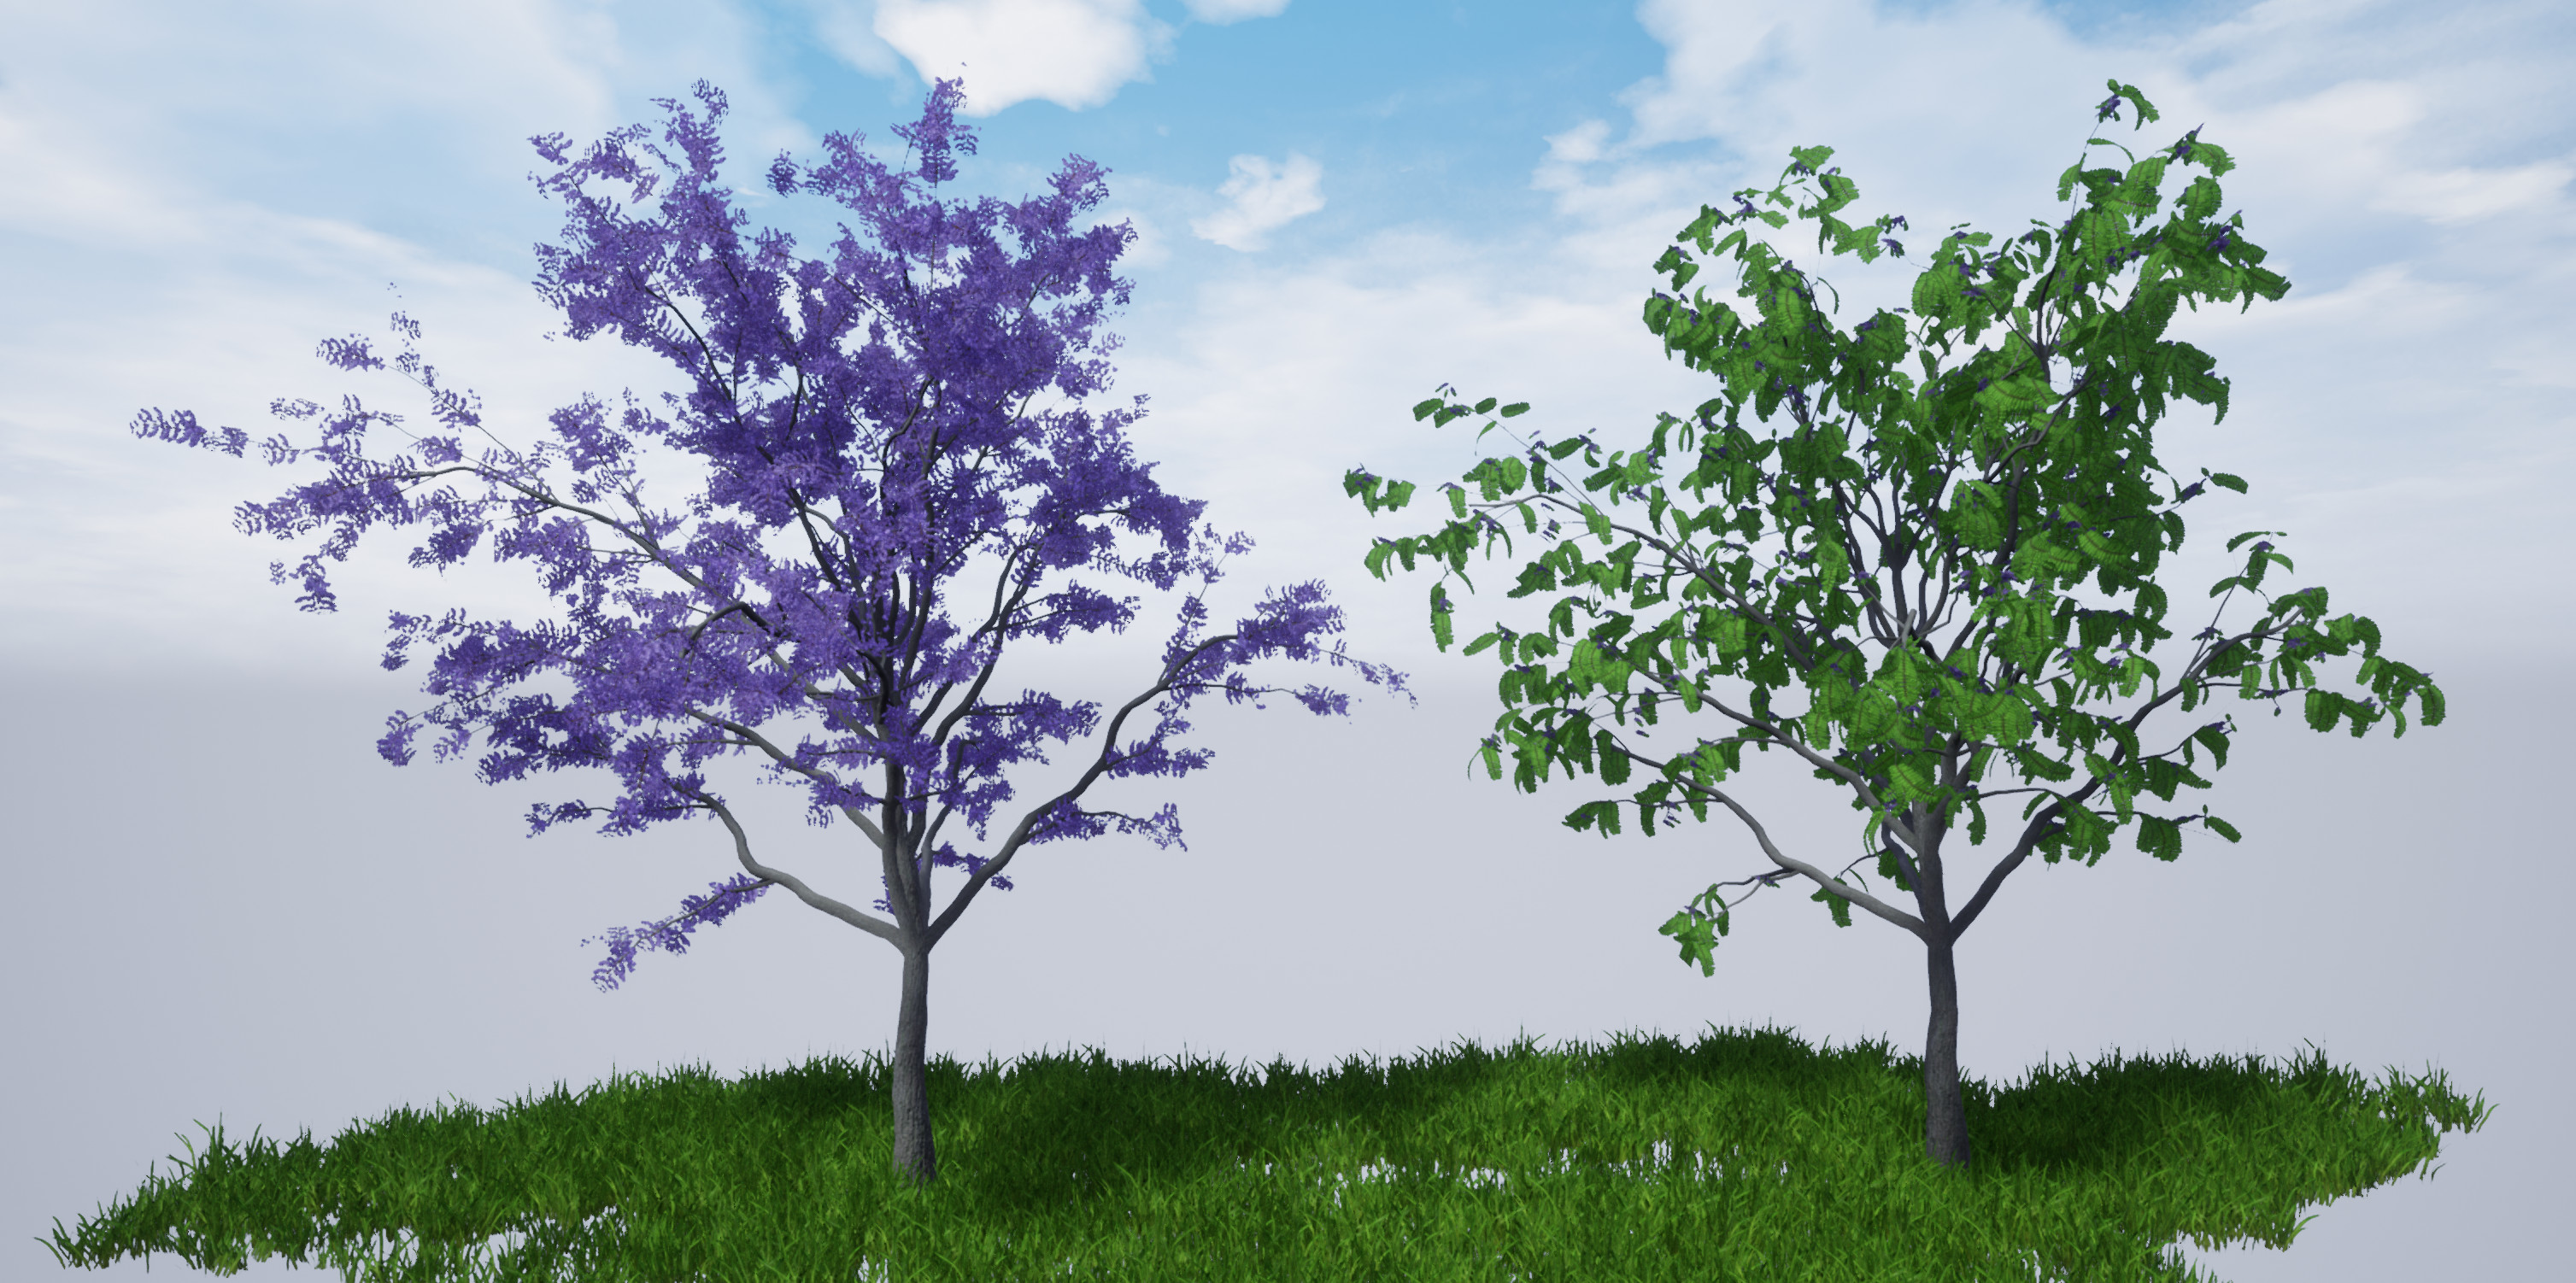 Flower and leaf versions, rendered in Unreal